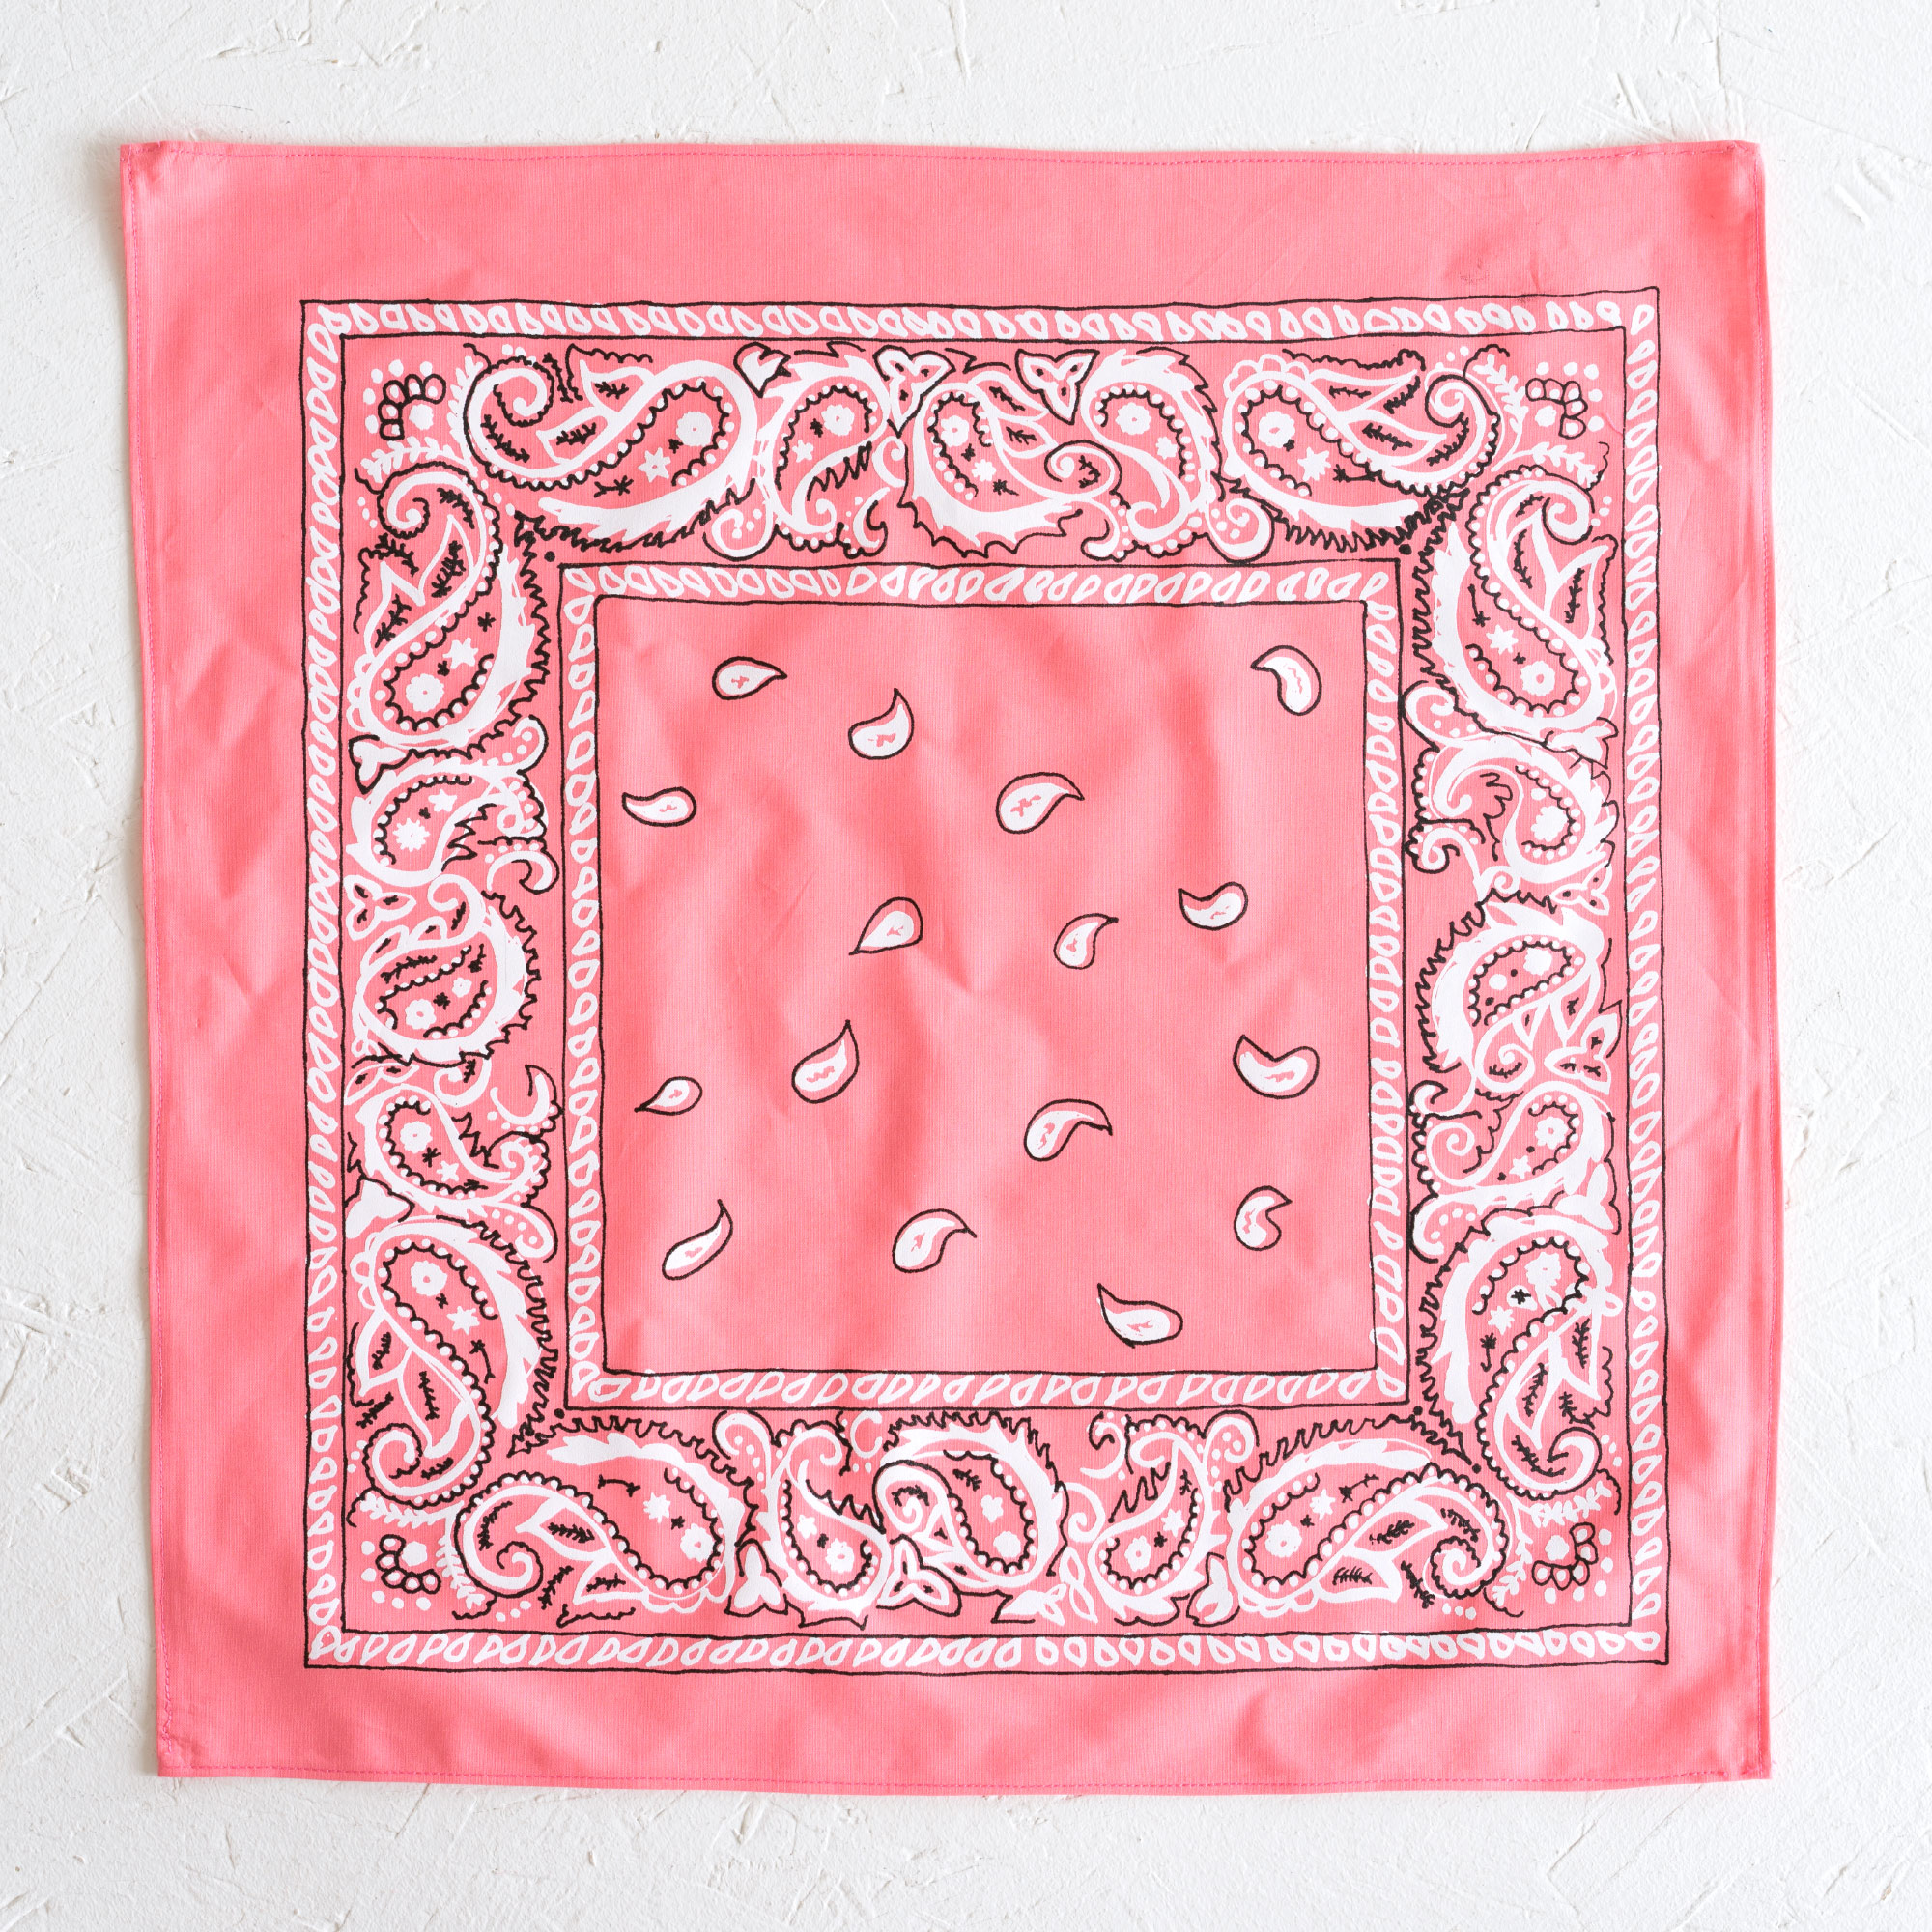 Nancy Davidson, *Hanky Code* (Light Pink), 2016, Two color silkscreen on hand cut & sewn cotton, 17 x 17 inches (43.18 x 43.18 cm)